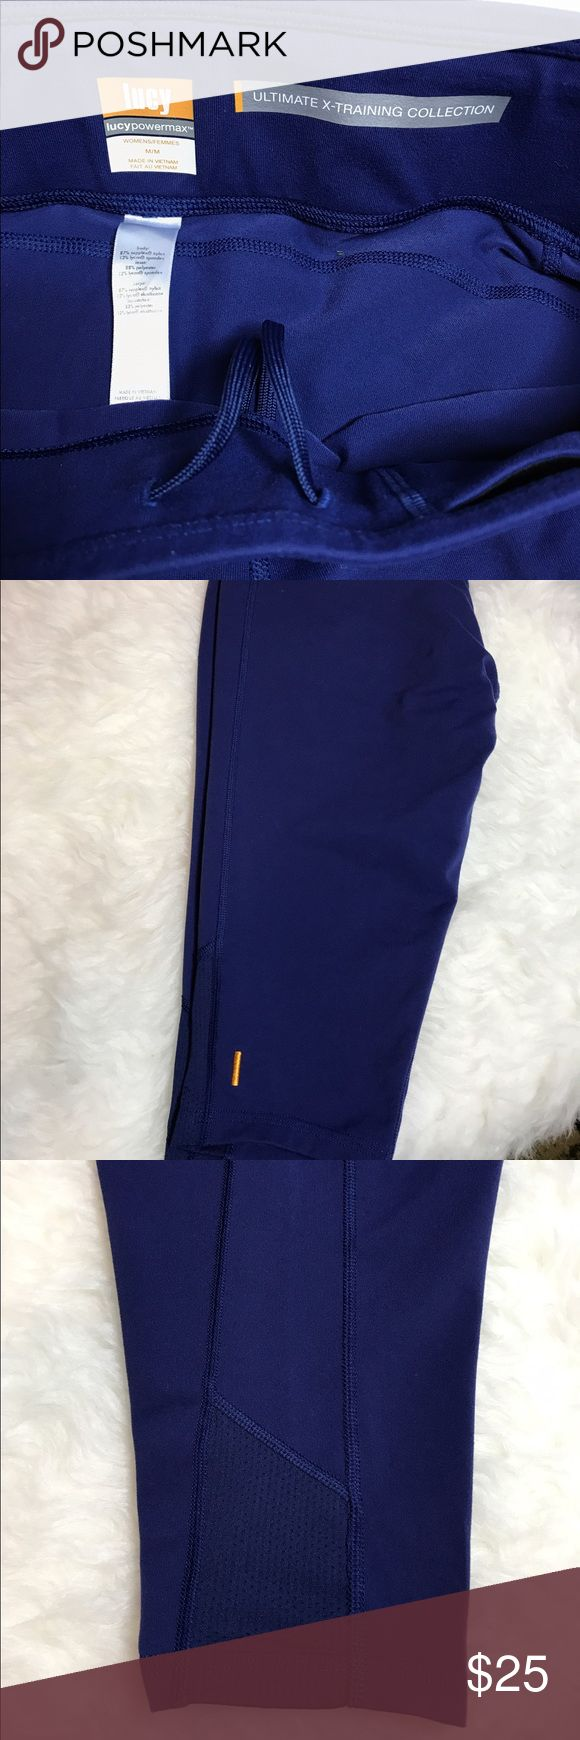 Price Drop!! Lucy power max training/yoga capris EUC. Zero flaws. Size medium(8-10). Navy, ultimate x training Collection. Very sought after, no longer made. lucy power max Pants Capris